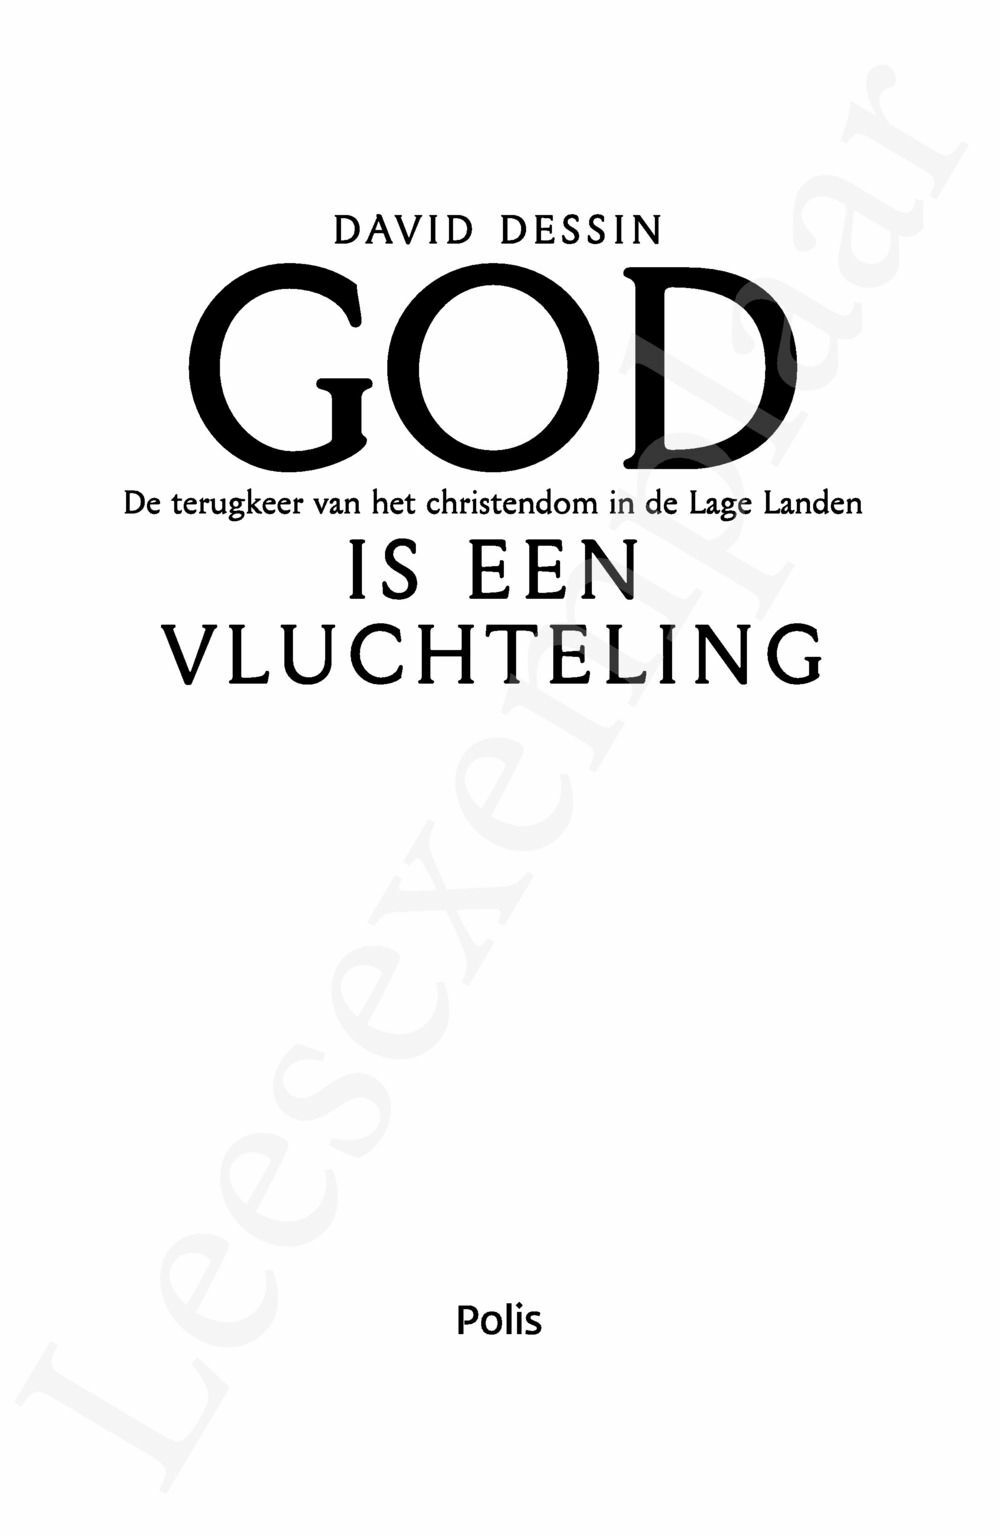 Preview: God is een vluchteling